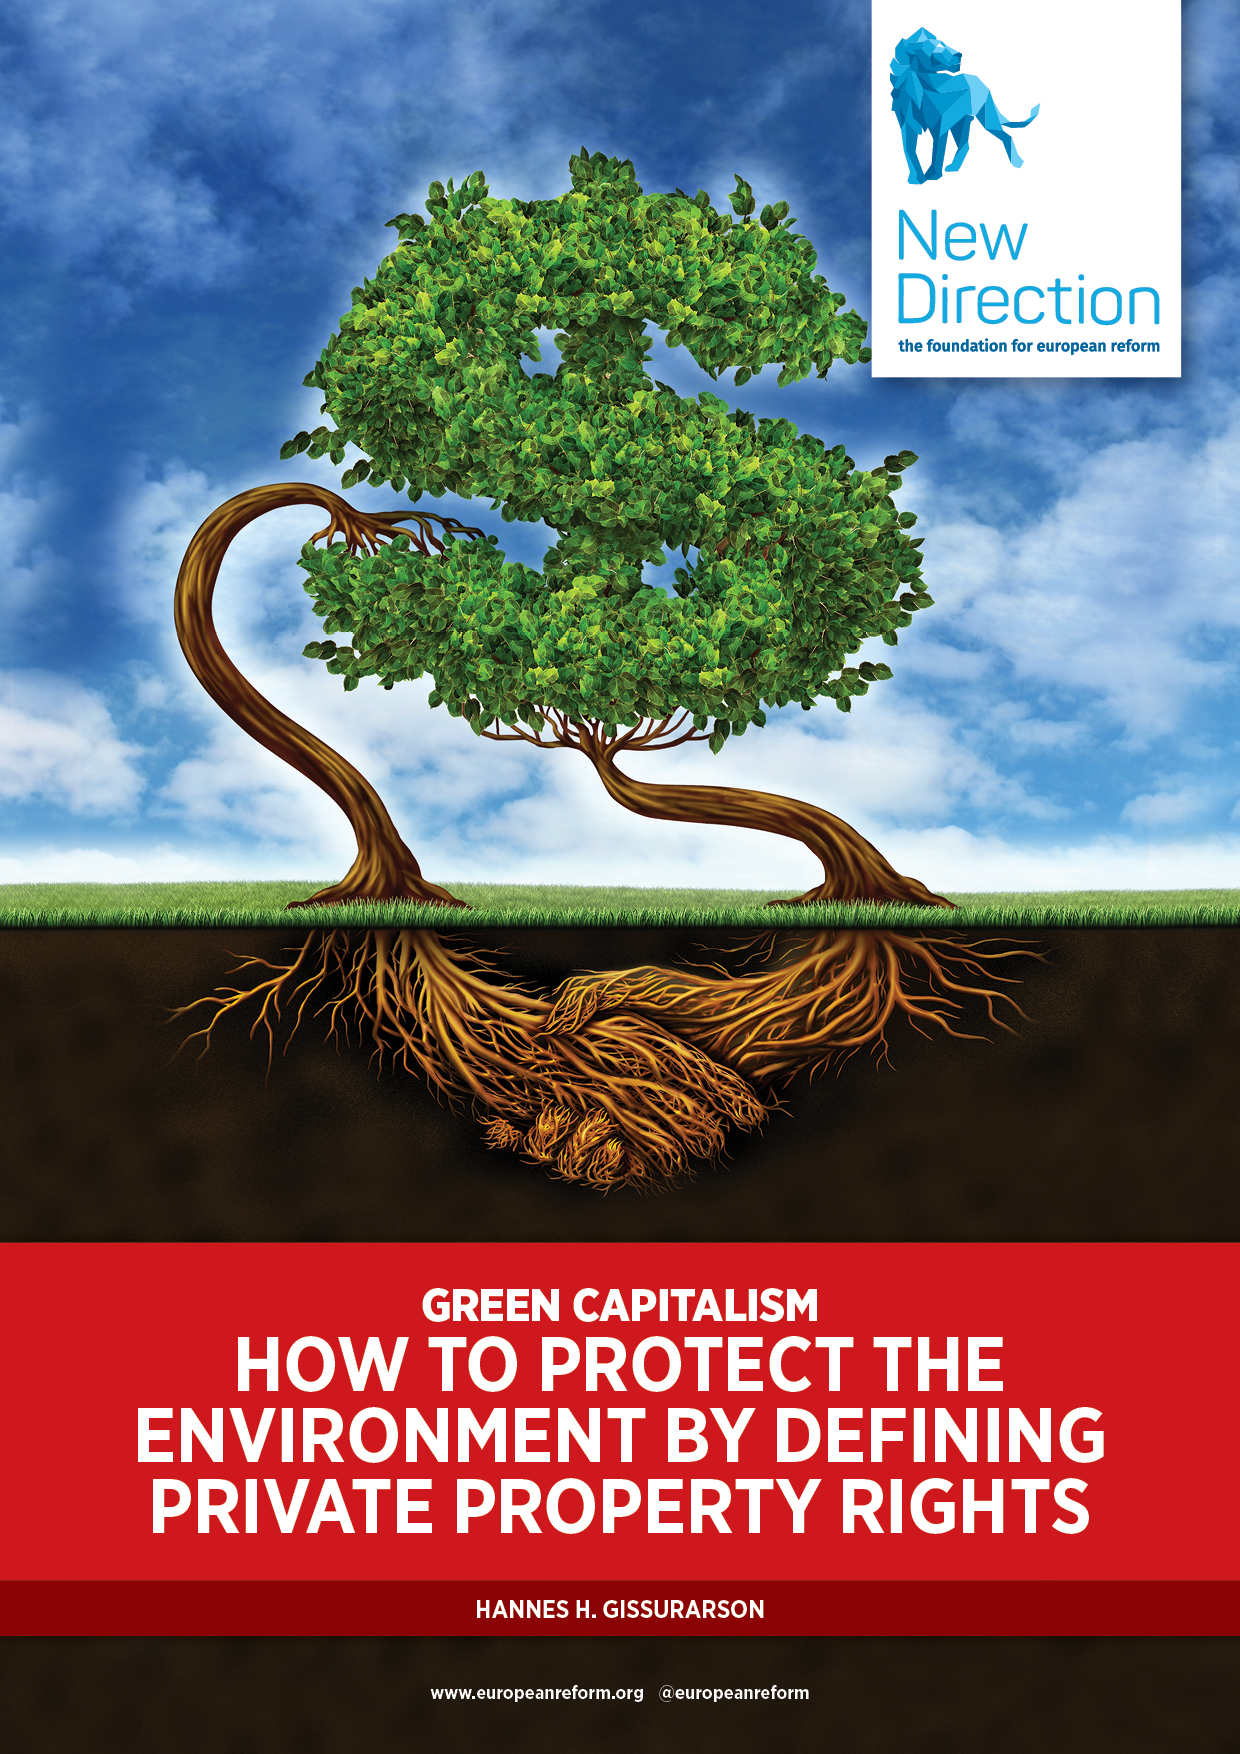 Green Capitalism: How to Protect the Environment by Defining Private Property Rights